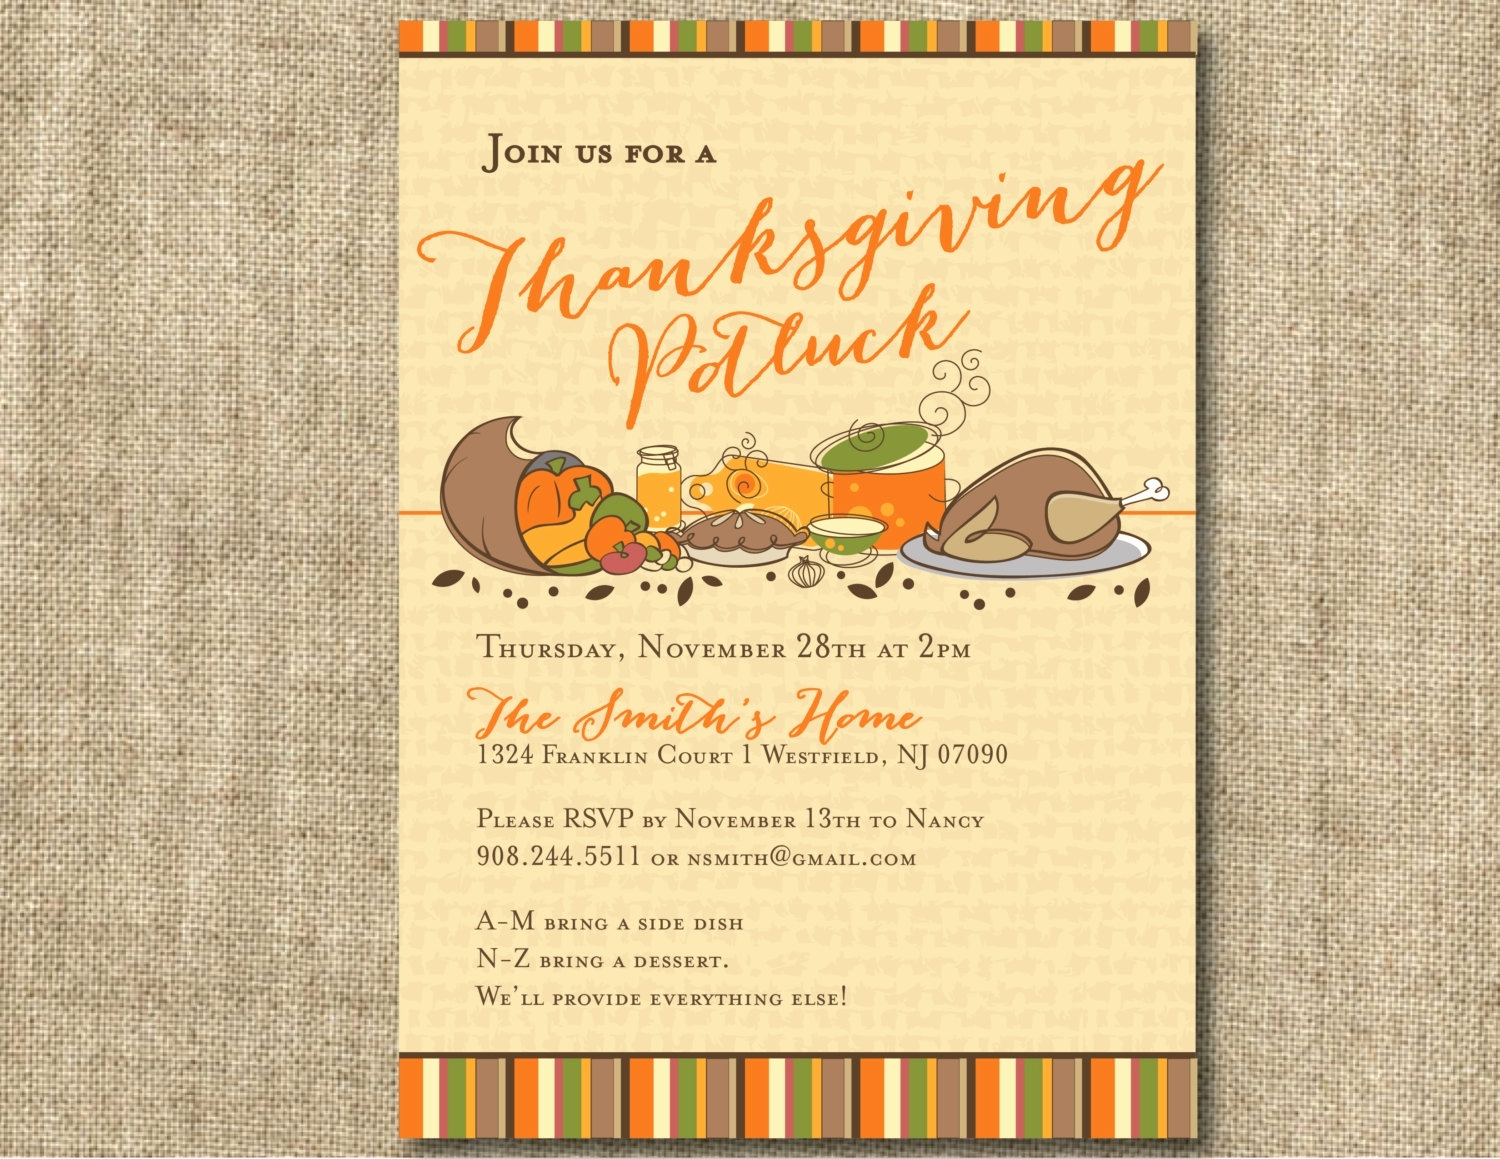 Office Potluck Invitation Wording Samples Elegant Thanksgiving Potluck Invitation Wording Cobypic